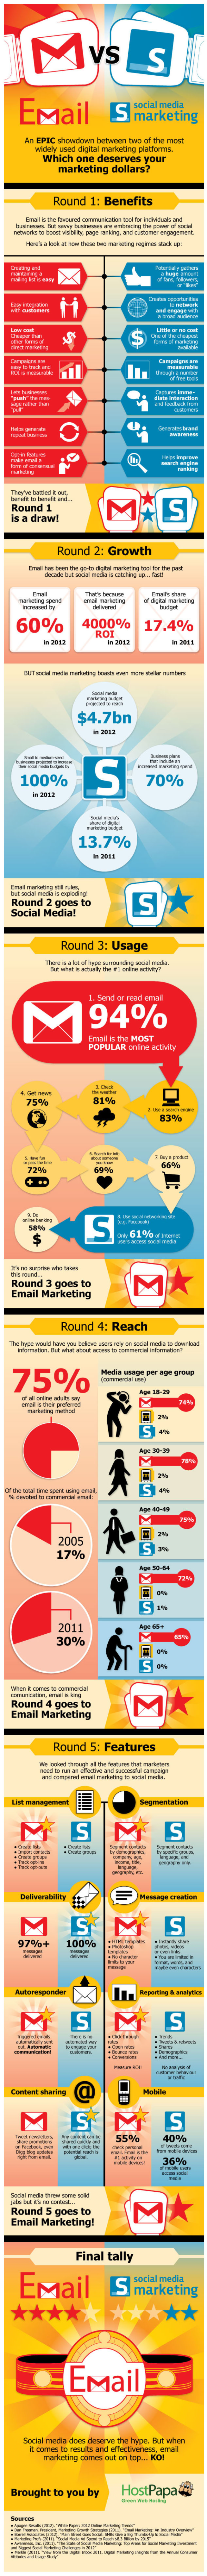 Email Marketing vs. Social Media Marketing resized 600